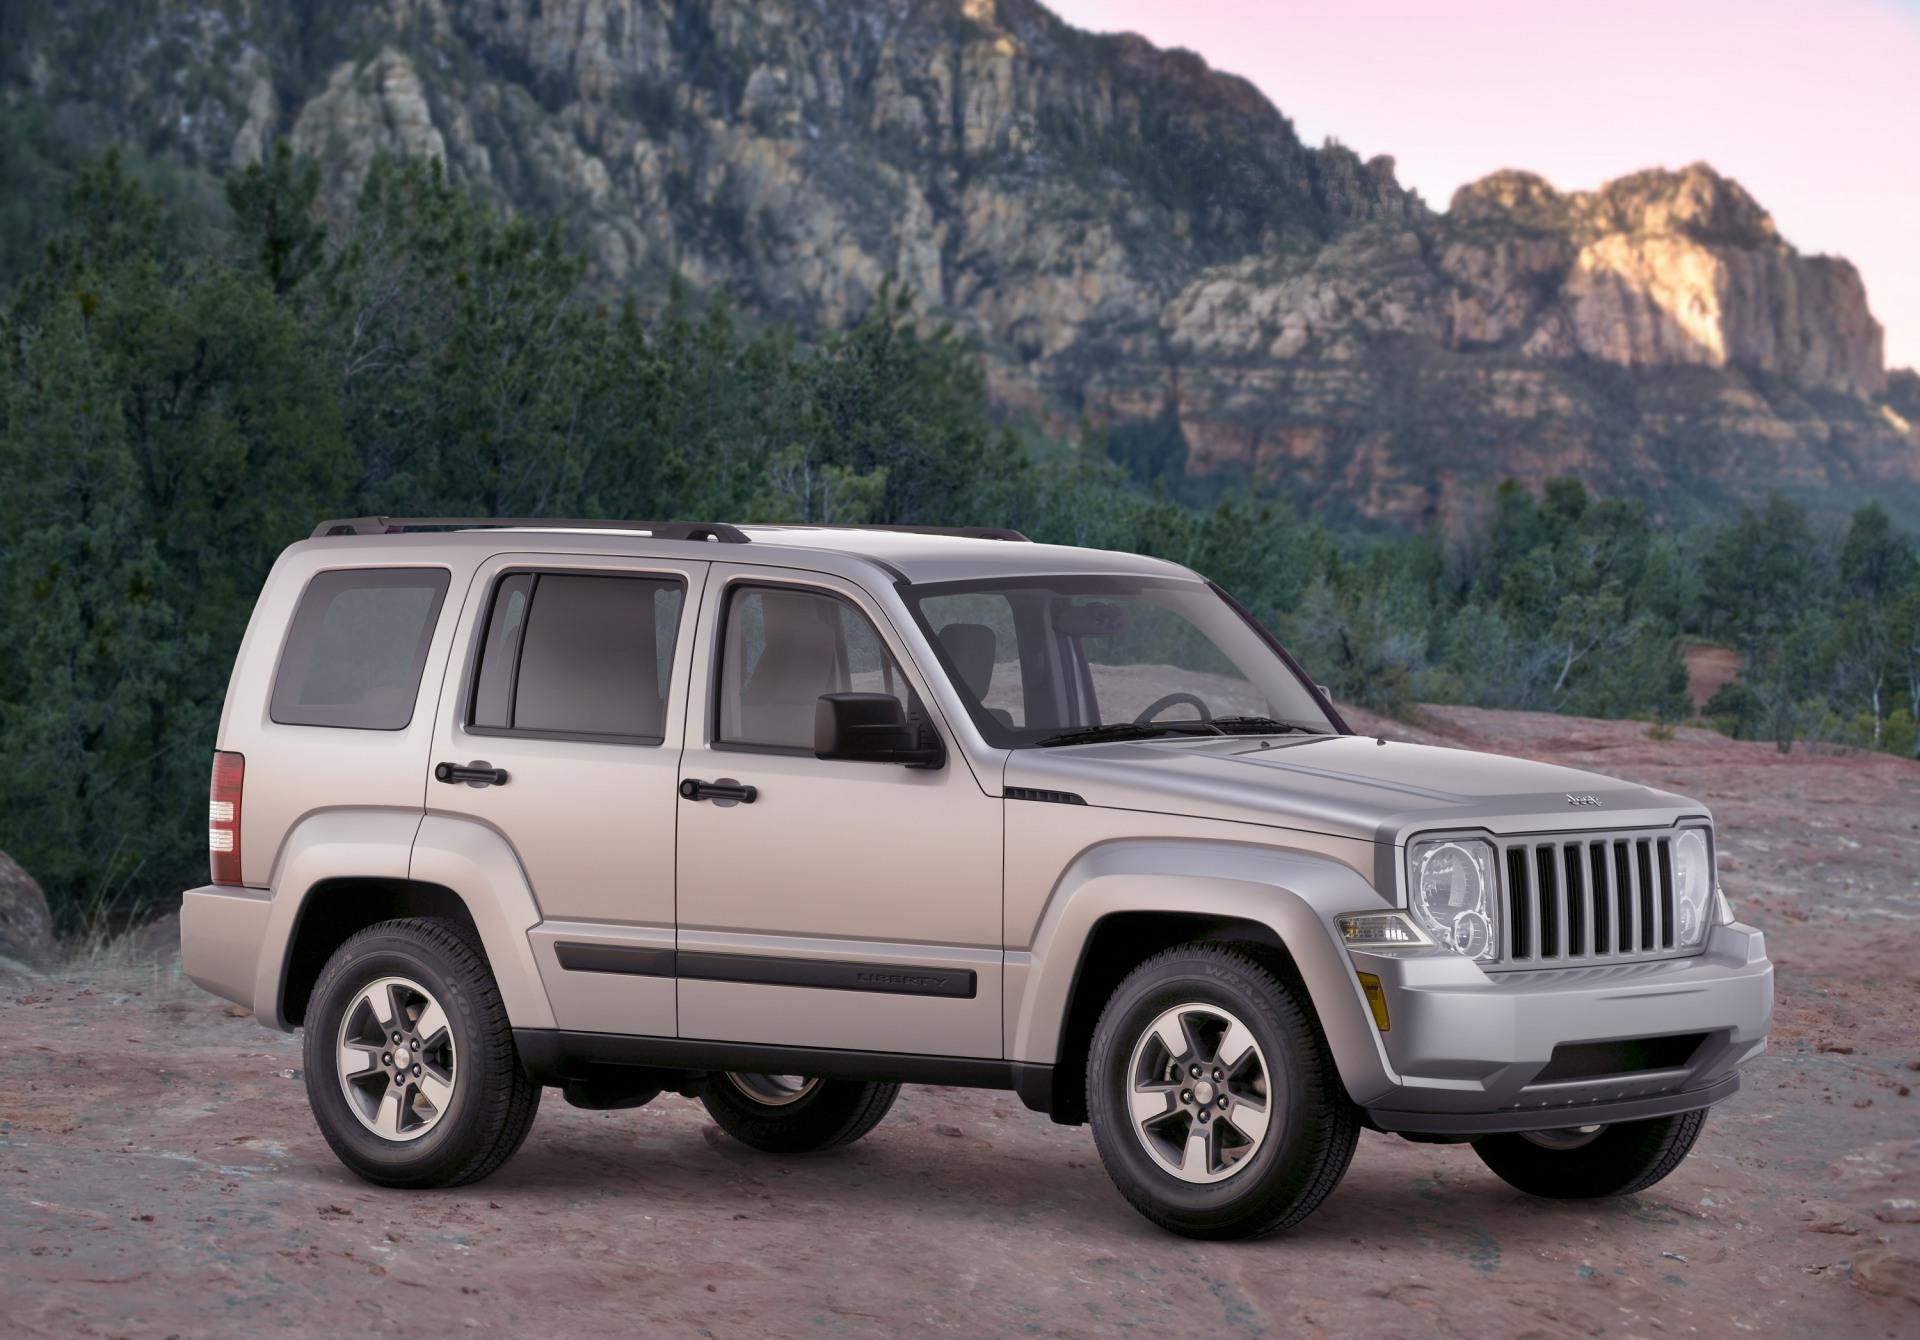 2009 jeep liberty image. https://www.conceptcarz/images/jeep